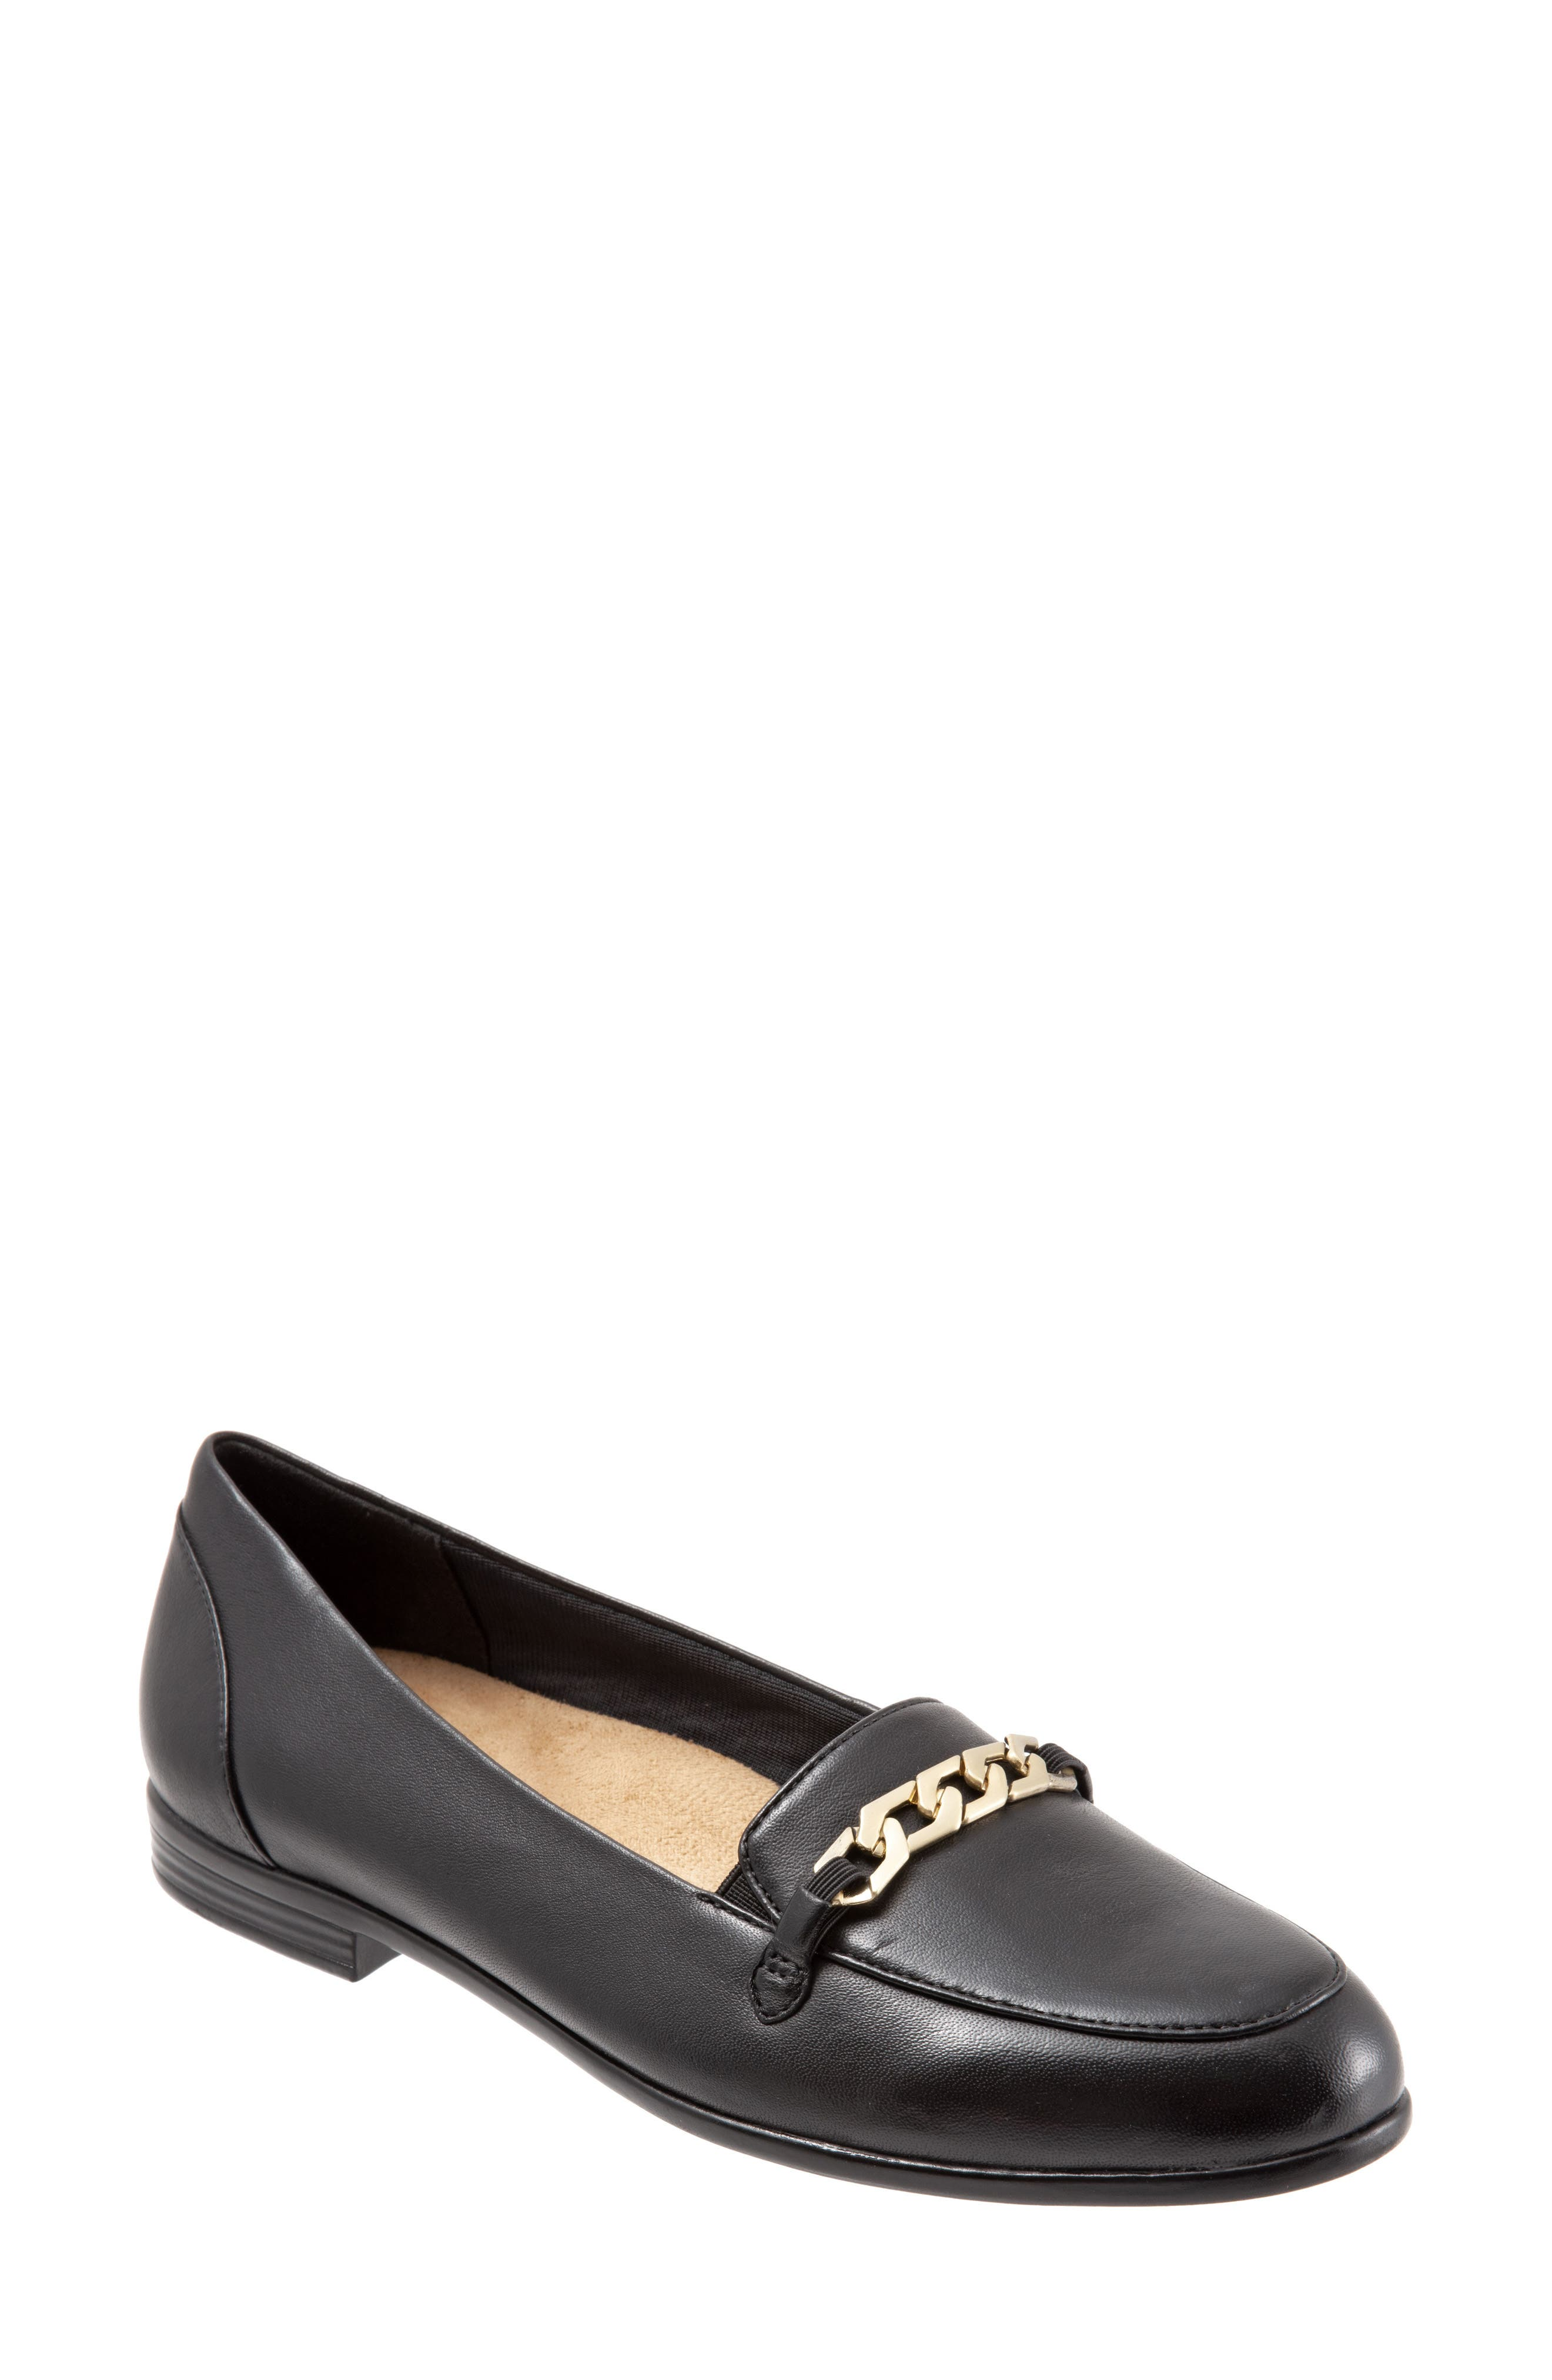 Anastasia Flat,                             Main thumbnail 1, color,                             DARK BLACK LEATHER